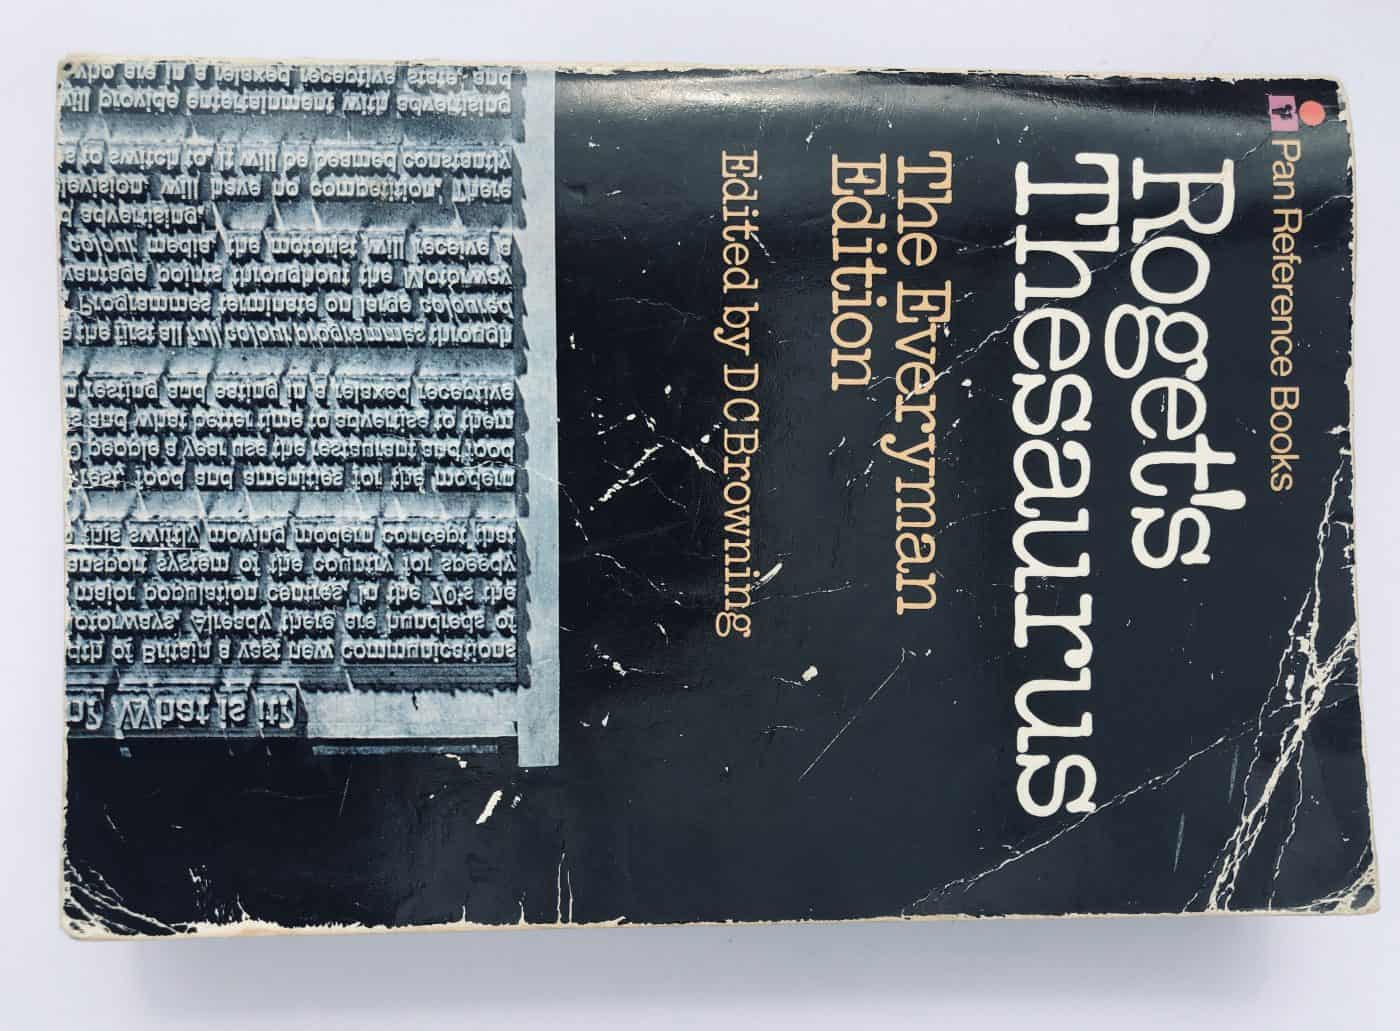 A well-used copy of Roget's Thesaurus, used by a copywriter